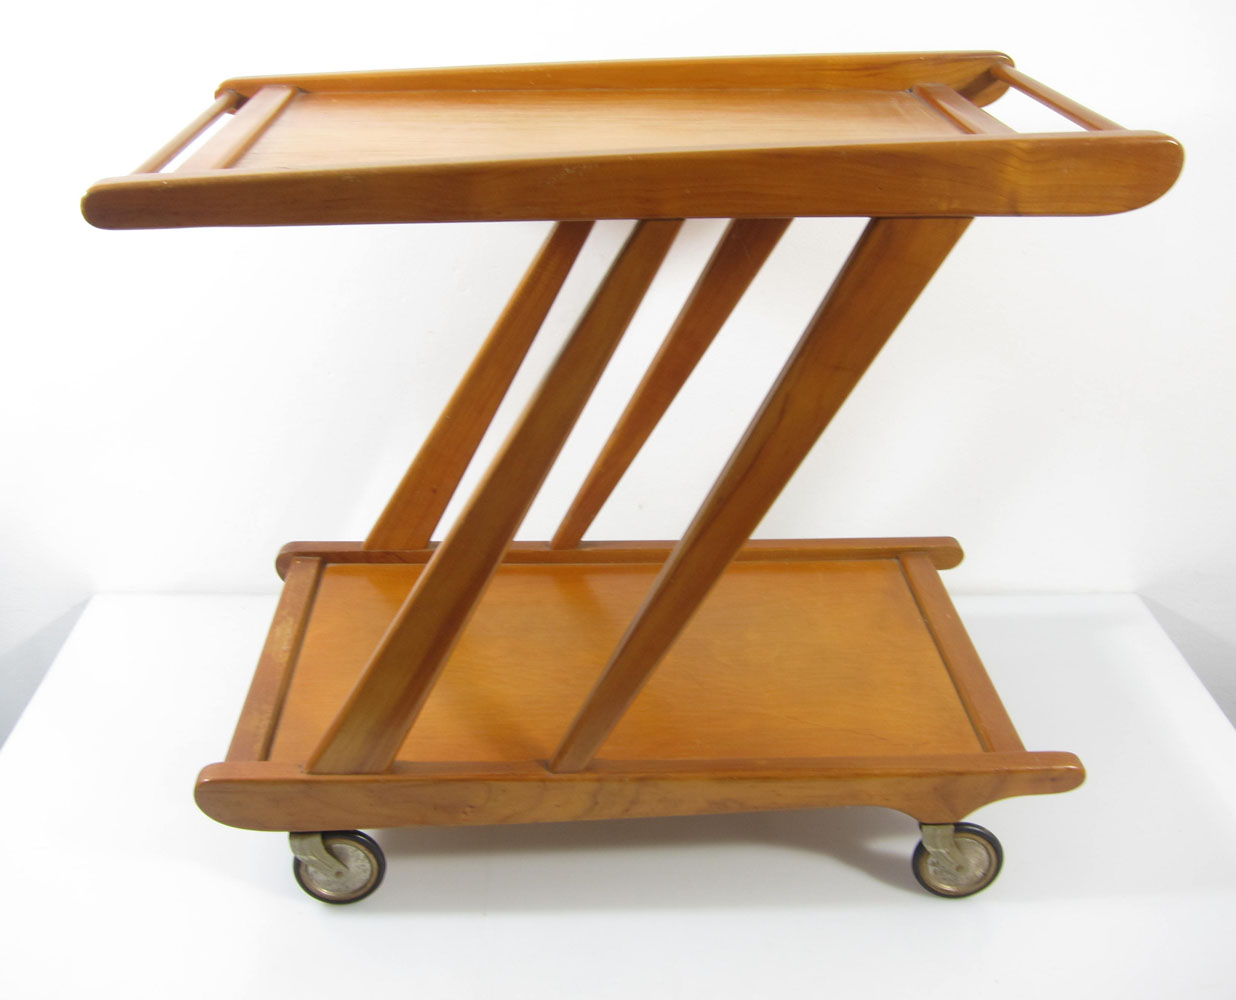 Cees Braakman style vintage tea trolley in the same style as the 'Mobilo' PE03 Tea Trolley from Cees Braakman from the fifties.